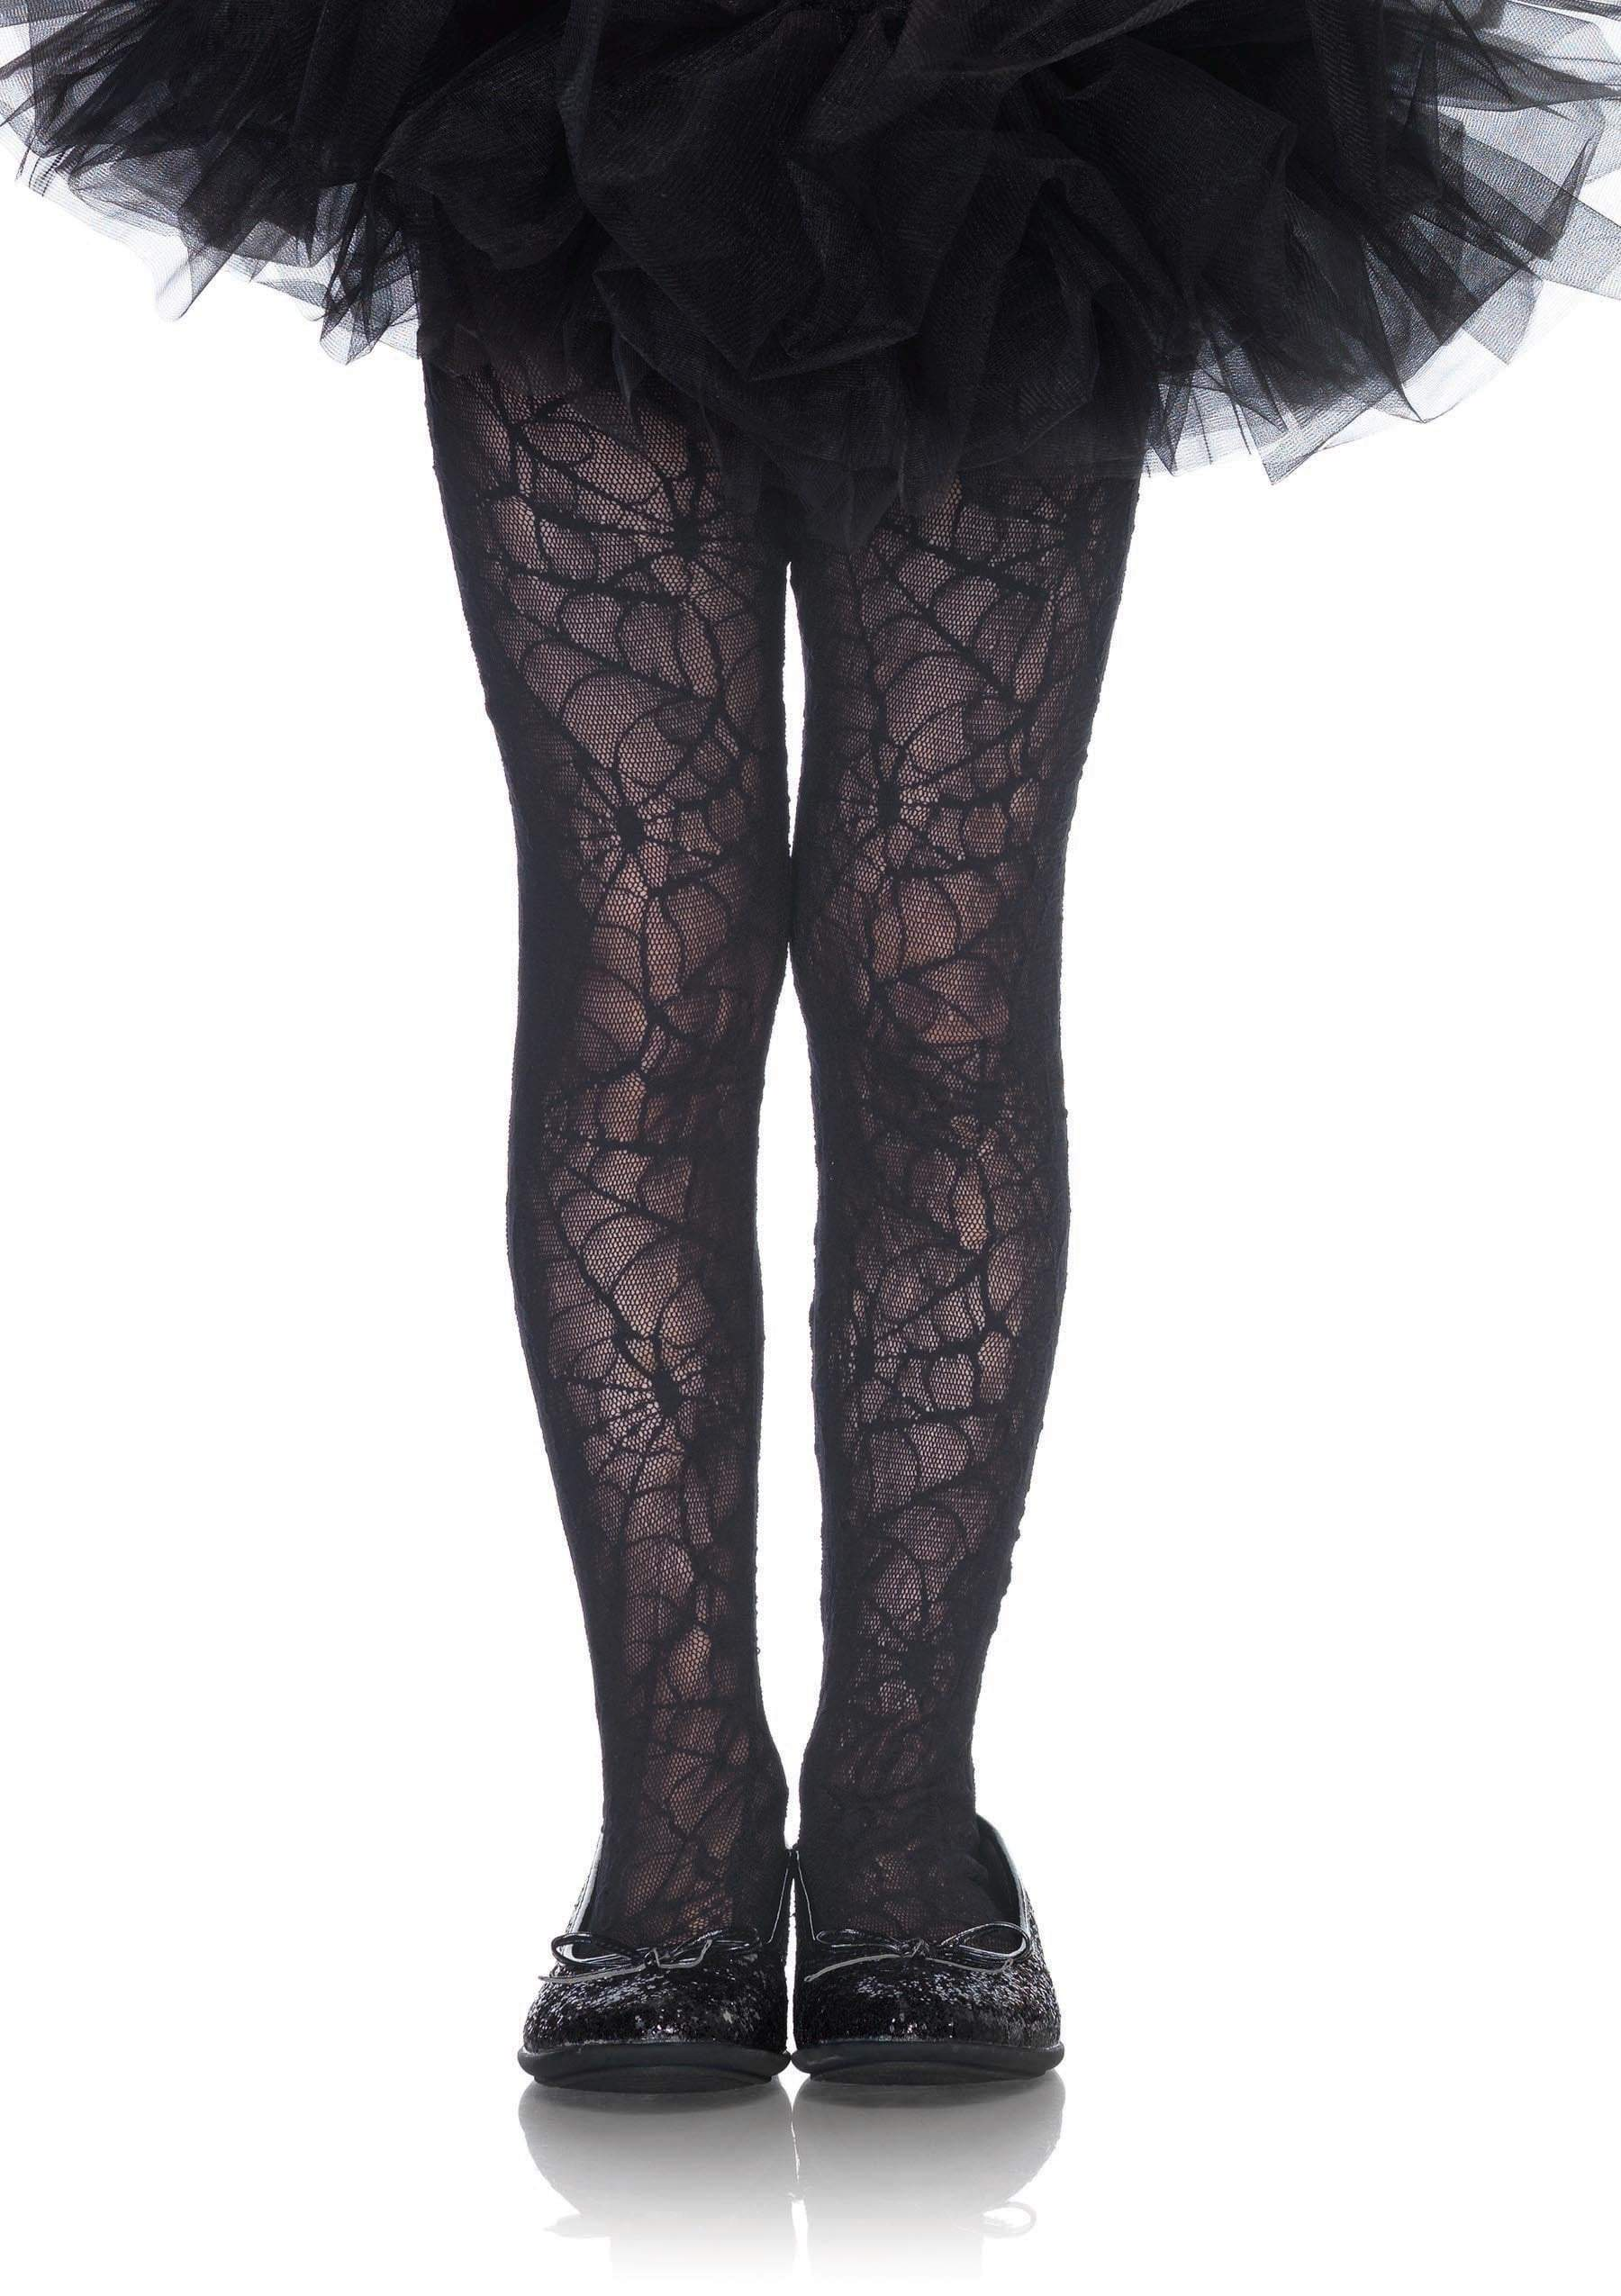 White Tights Pantyhose Costume Accessory Adult Costume Christmas Angel